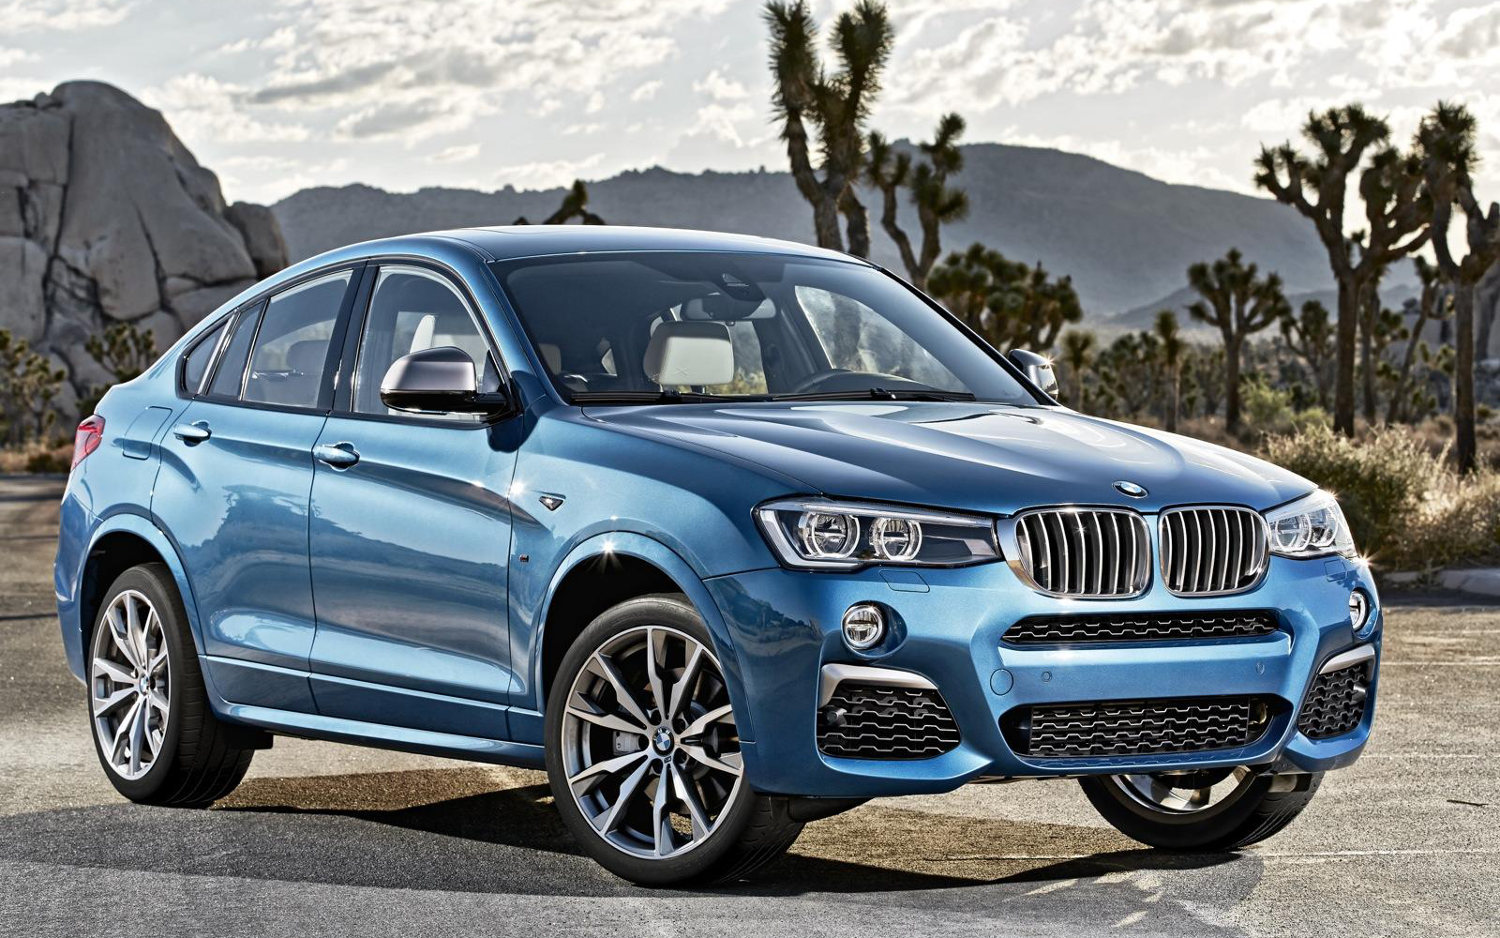 Comparison Bmw X4 Xdrive35i 2017 Vs Audi Q5 Suv 2017 Suv Drive